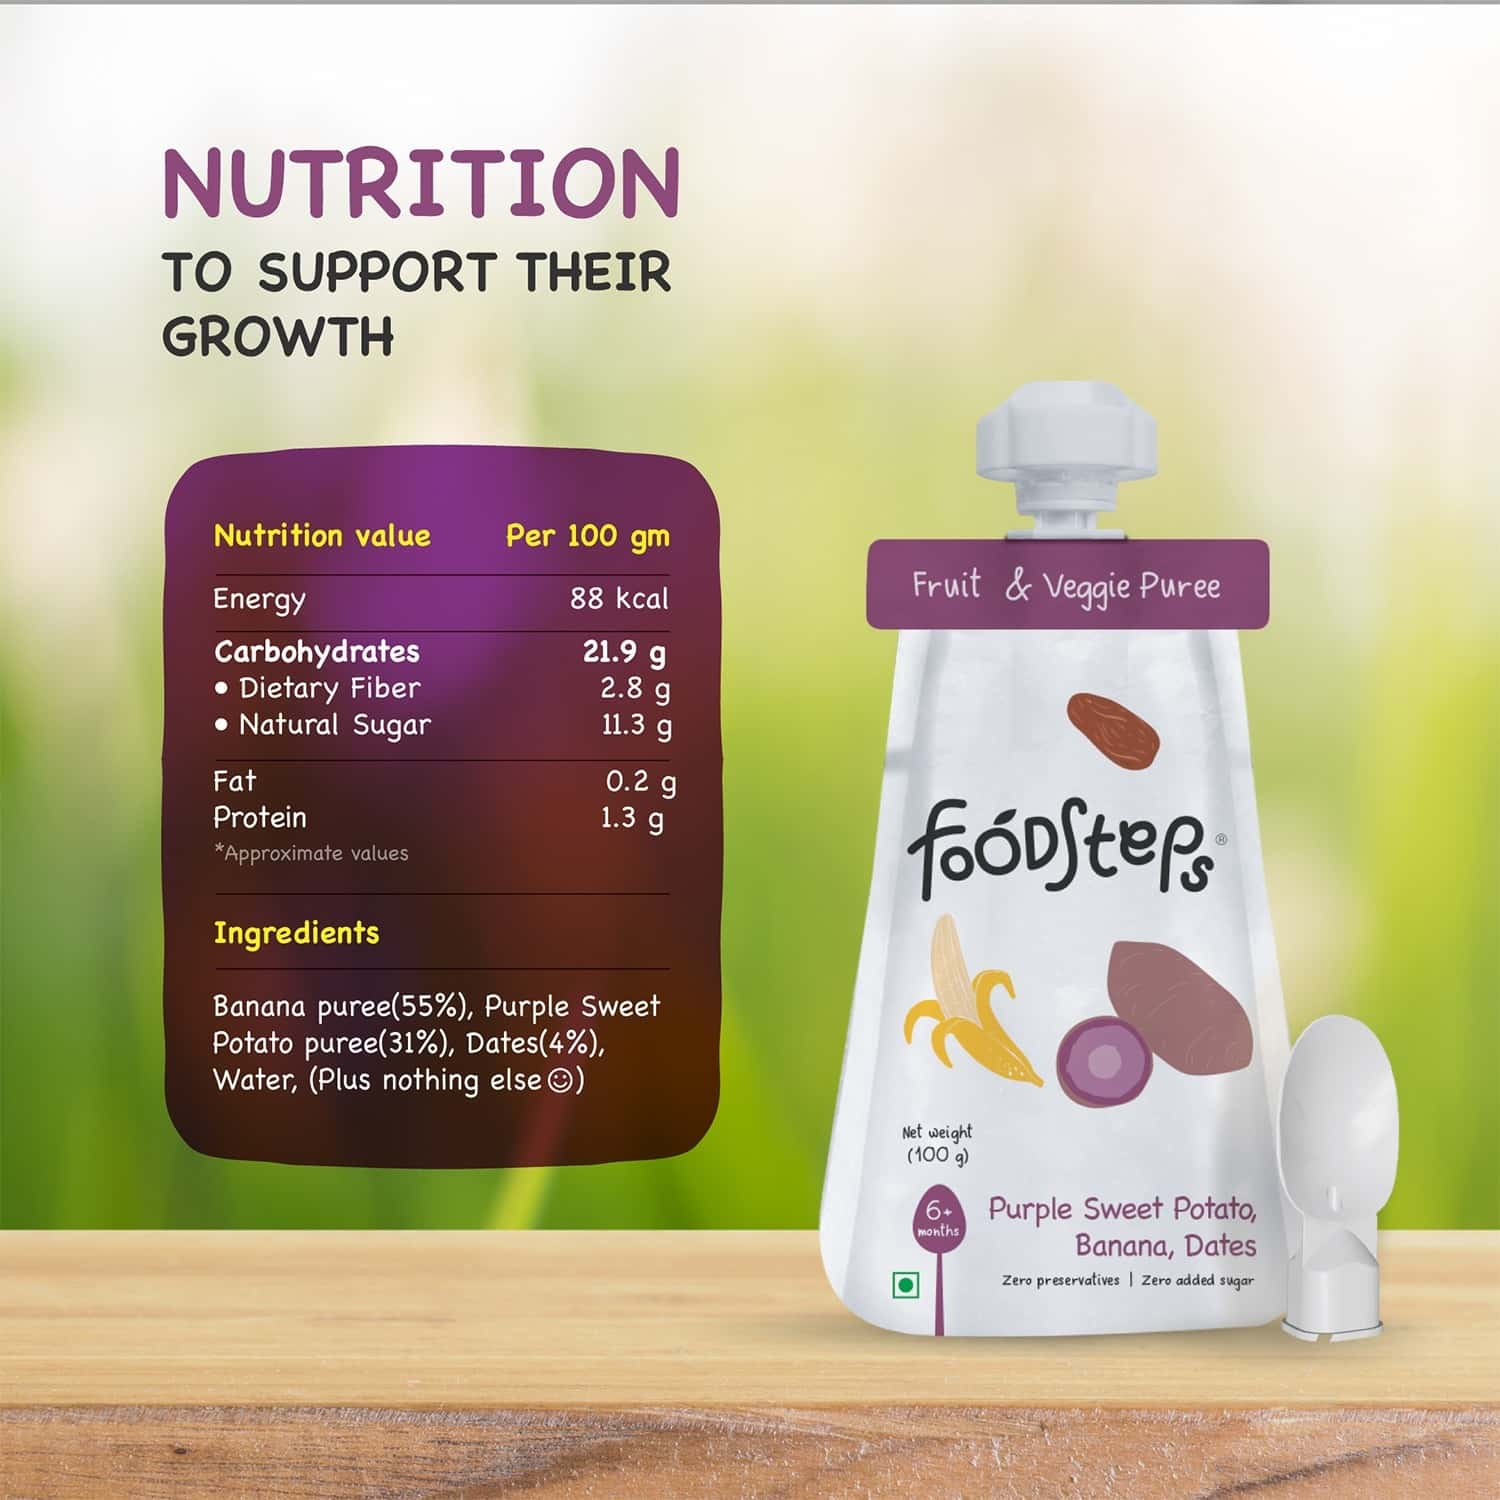 Food Steps Baby Food For 6 Month+ Baby - Purple Sweet Potato, Banana, Dates Puree - Pack Of 3 (100 Gm Each) - All Natural, Safe, No Sugar - With Attachable Spoon